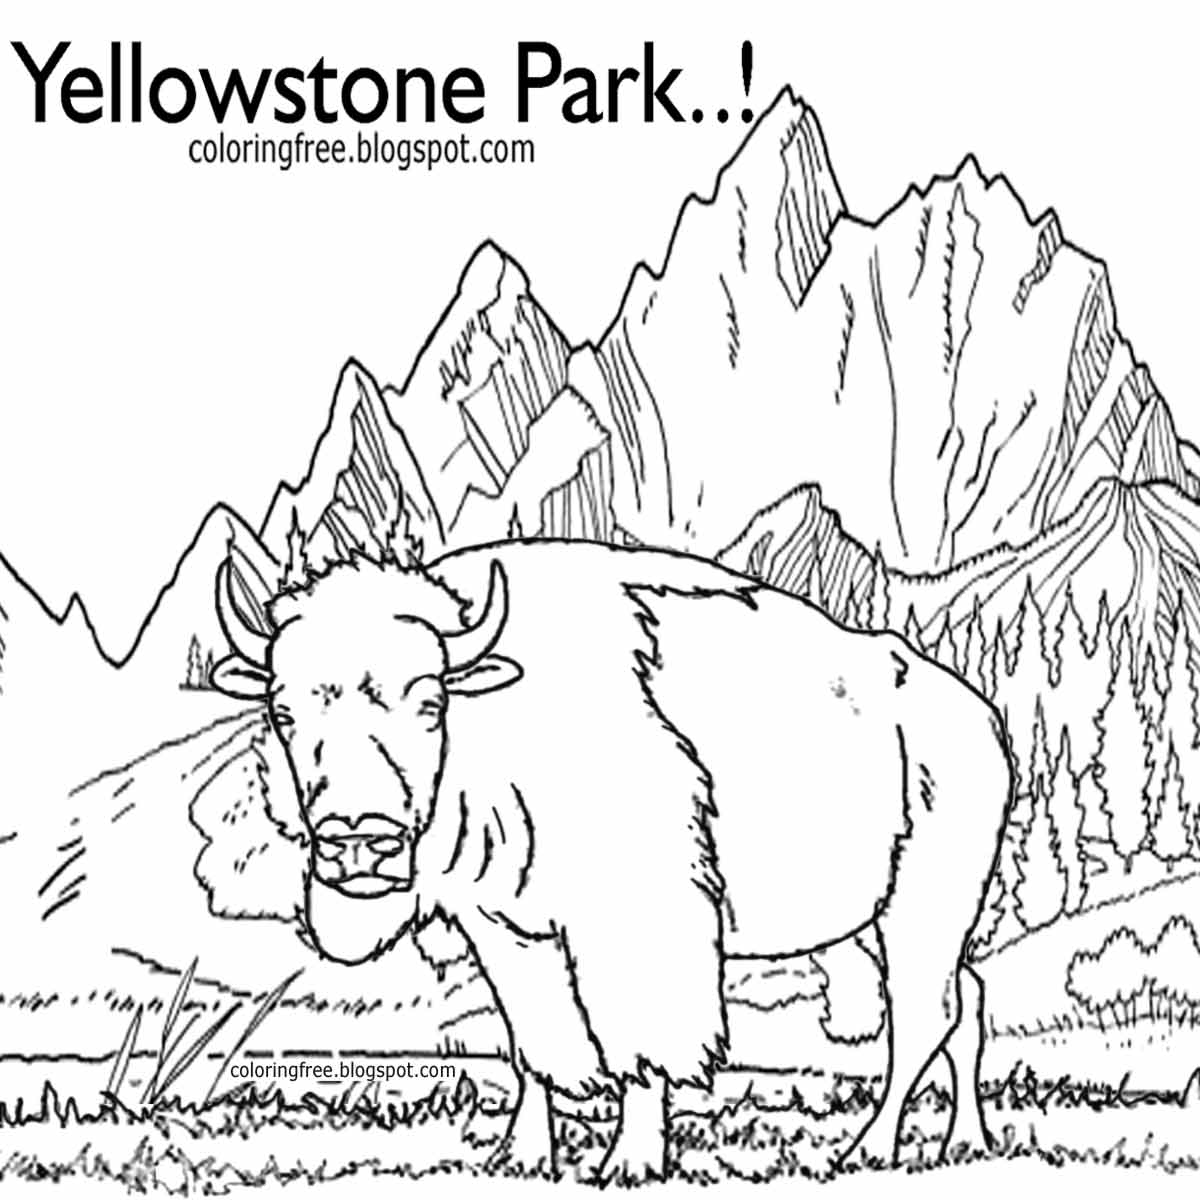 Grassland Animals Drawing at GetDrawings.com | Free for personal use ...